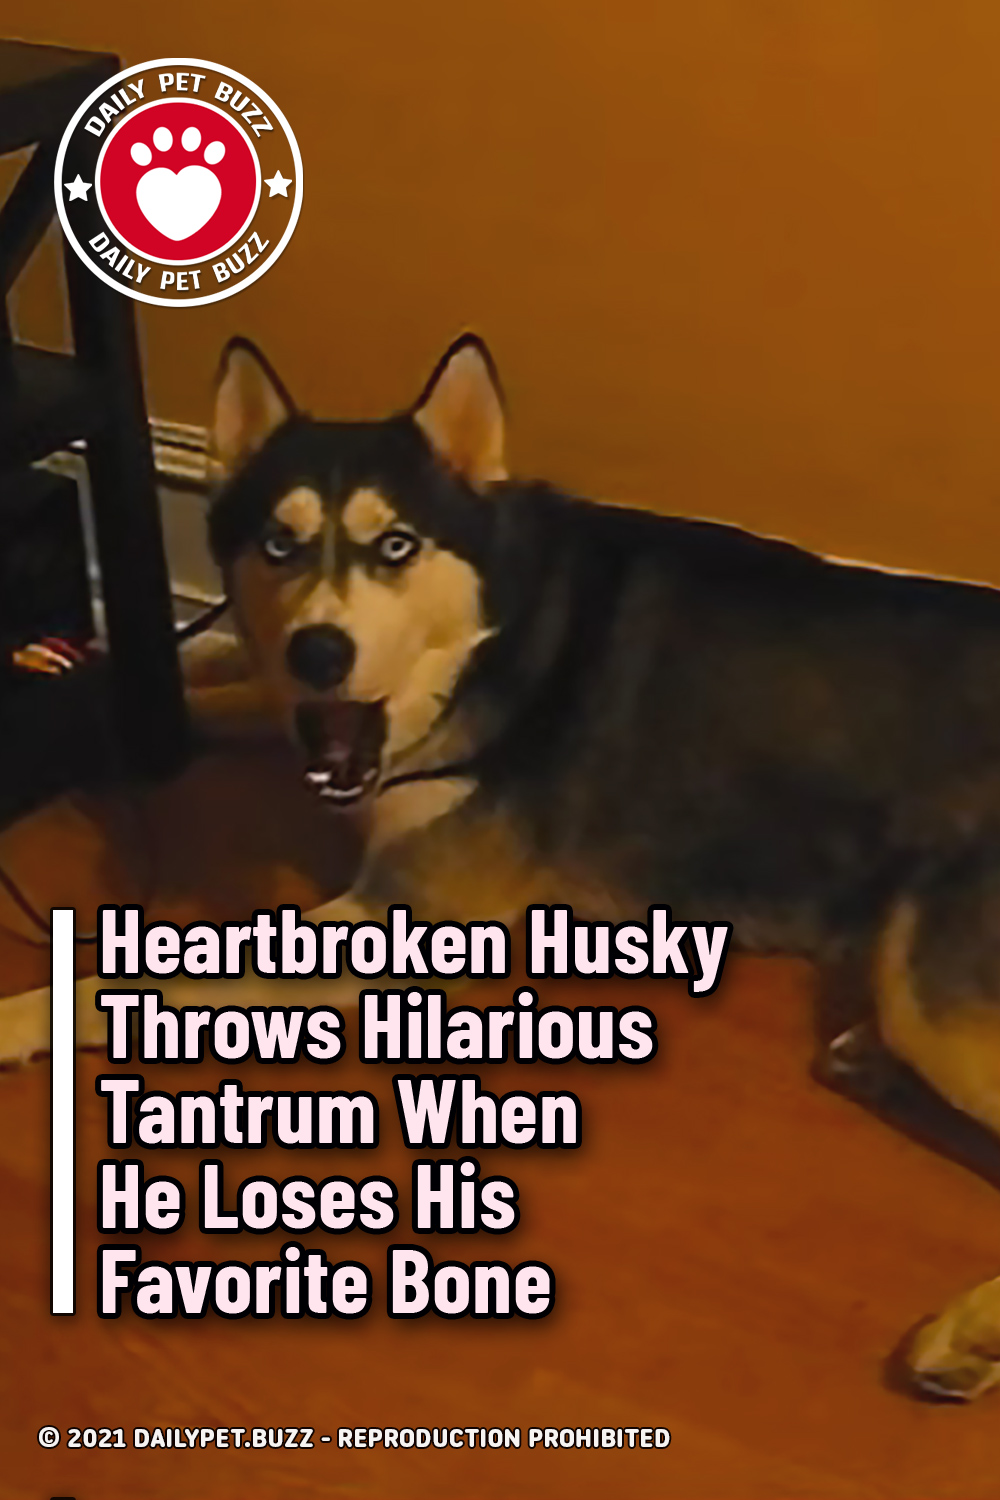 Heartbroken Husky Throws Hilarious Tantrum When He Loses His Favorite Bone